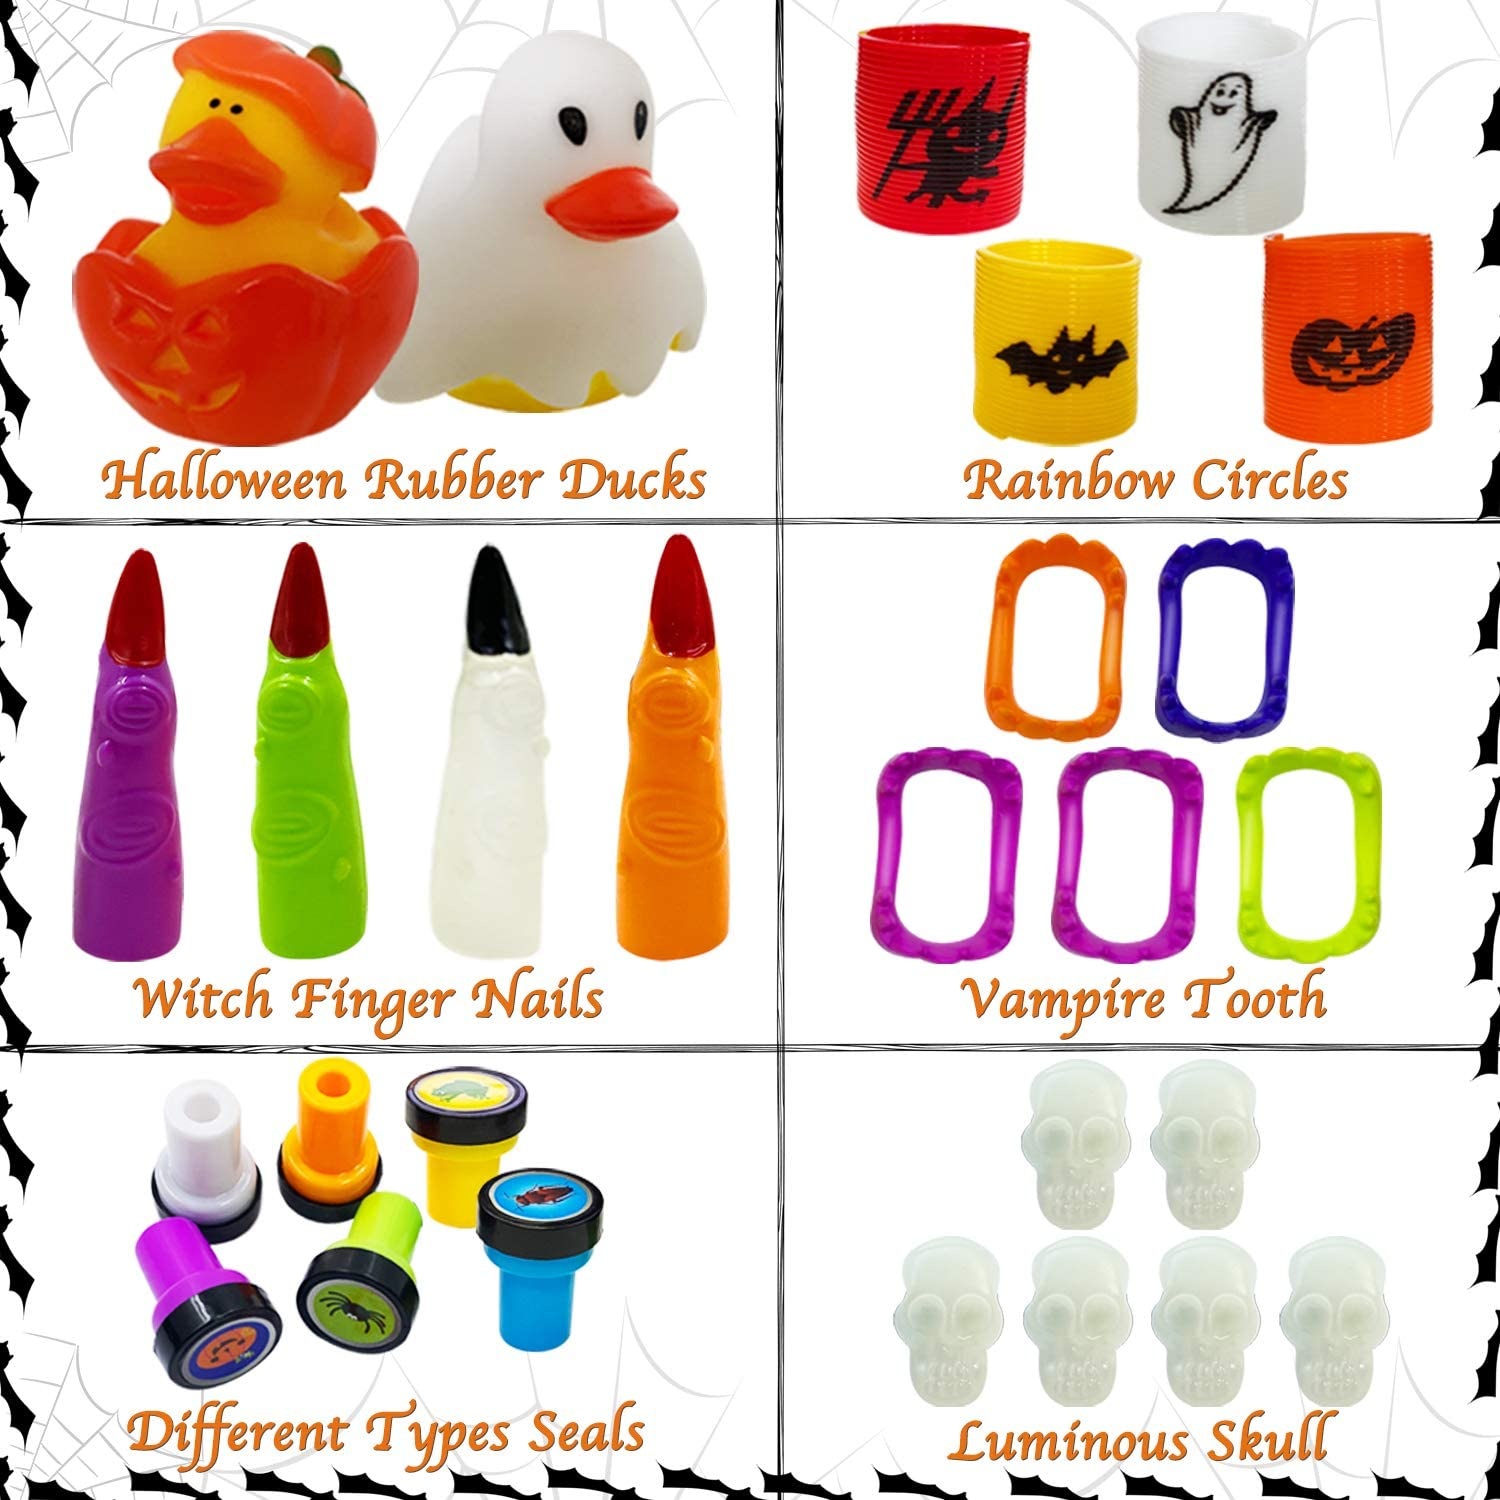 Halloween Miniatures Trick or Treating School Classroom Rewards 150 Pcs Halloween Party Toys Assortment for Kids Halloween Party Favors